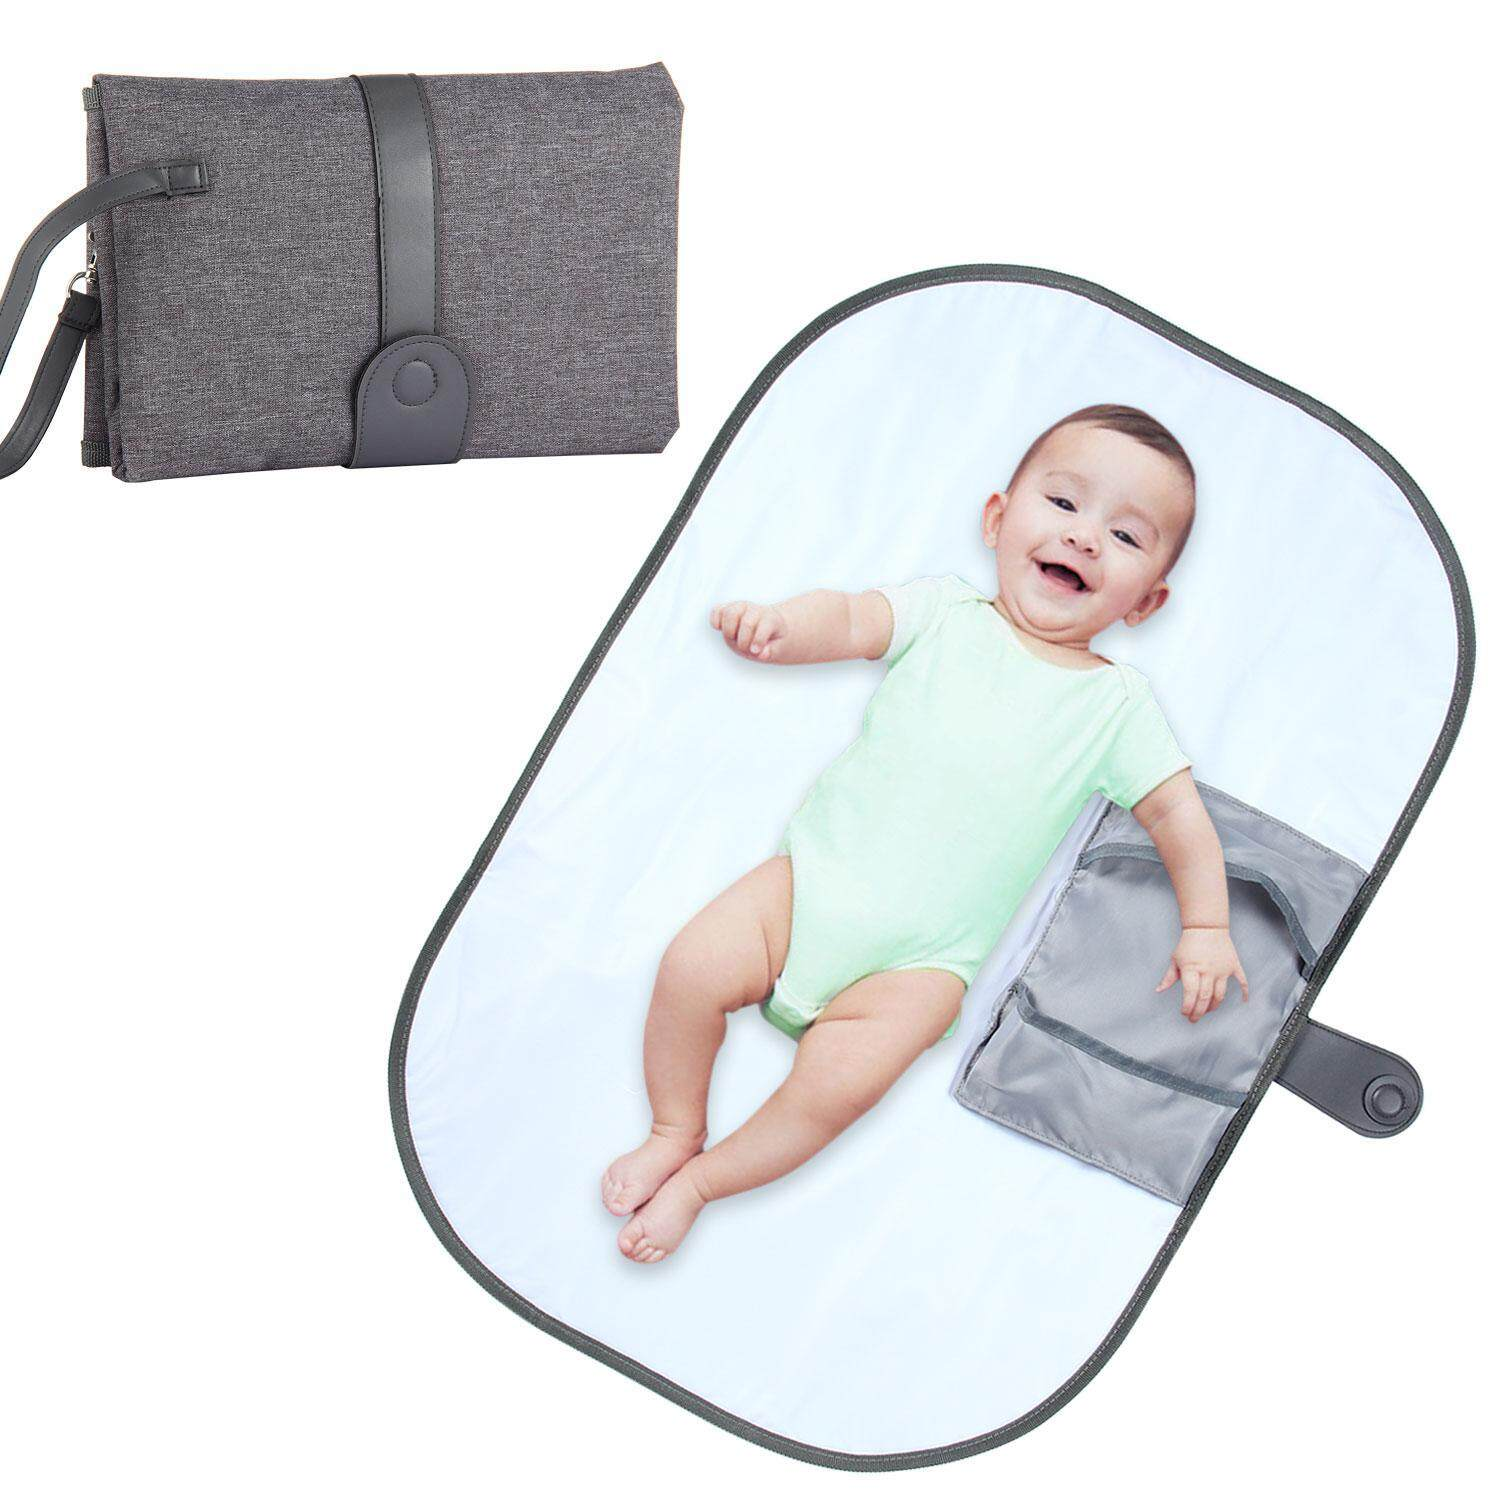 Leegoal Portable Nappy Changing Pad, Waterproof Diaper Changing Mat With Storage Pockets And Strap By Leegoal